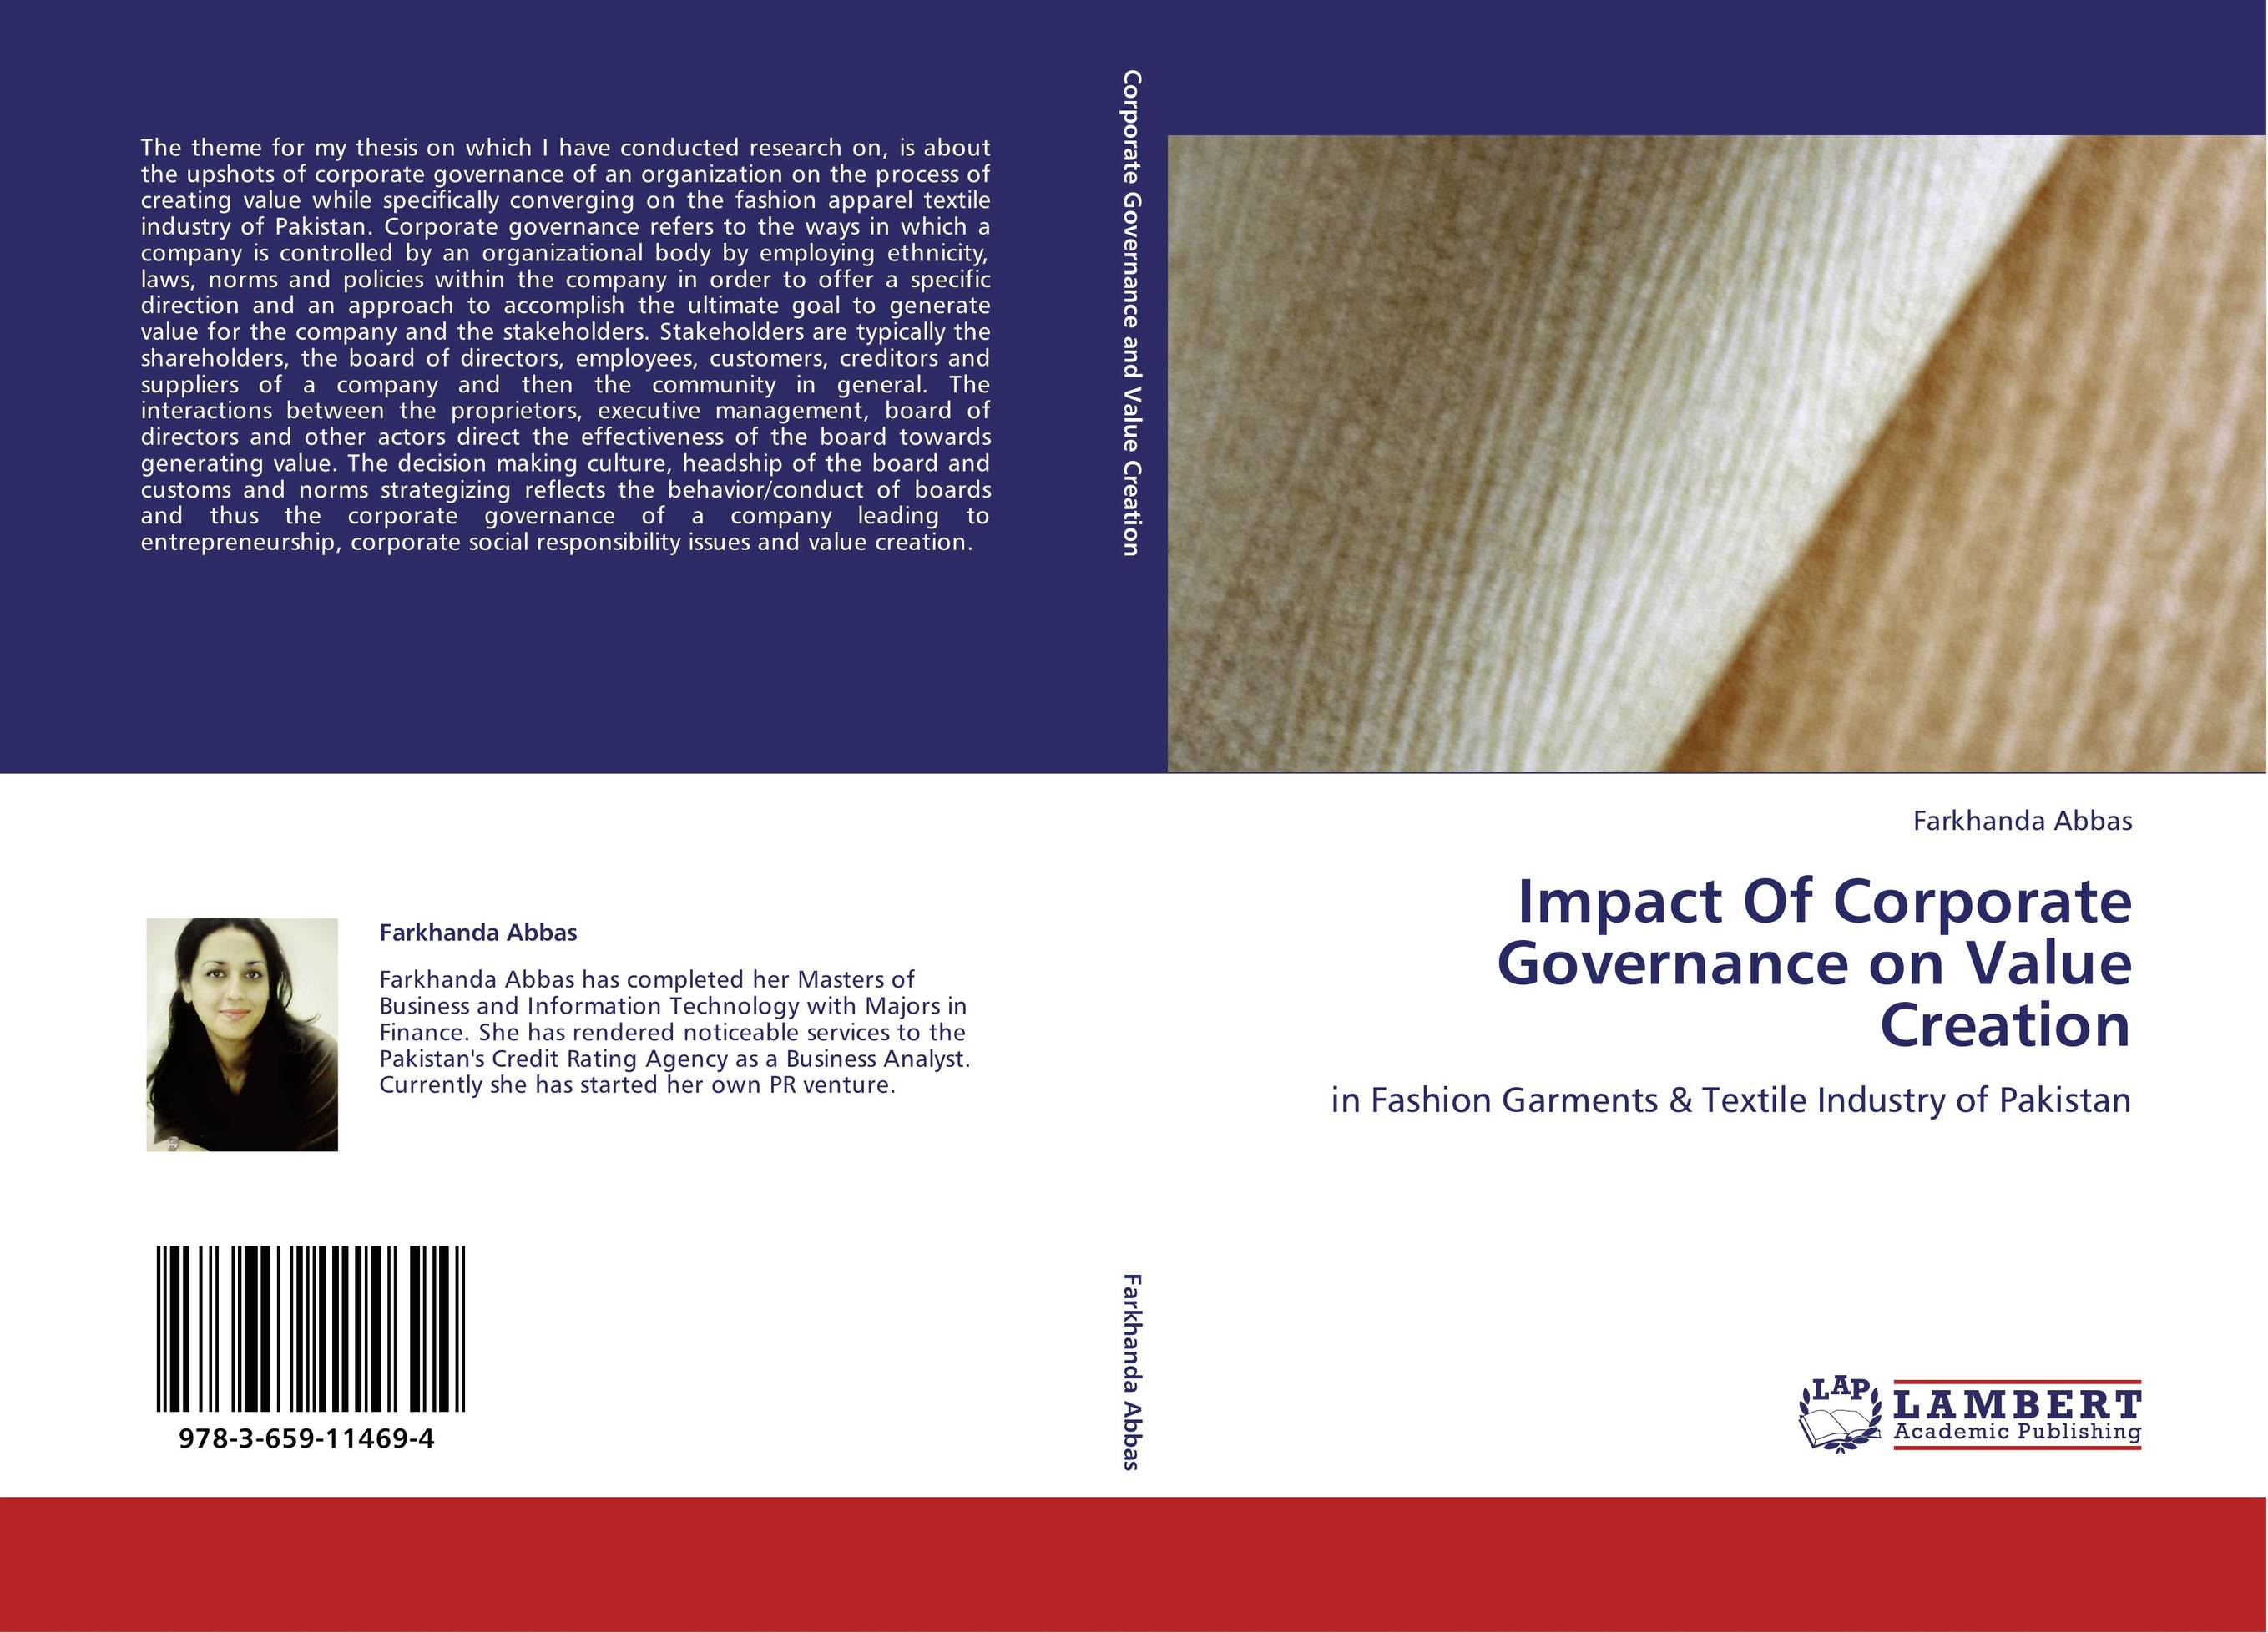 thesis on corporate governance and firm performance Whilst, five of the essays dwell on corporate governance and firm attributes, one considers determinants of board size and composition by using data from ghana and the last essay explores how corporate governance and stock market development affect economic growth.